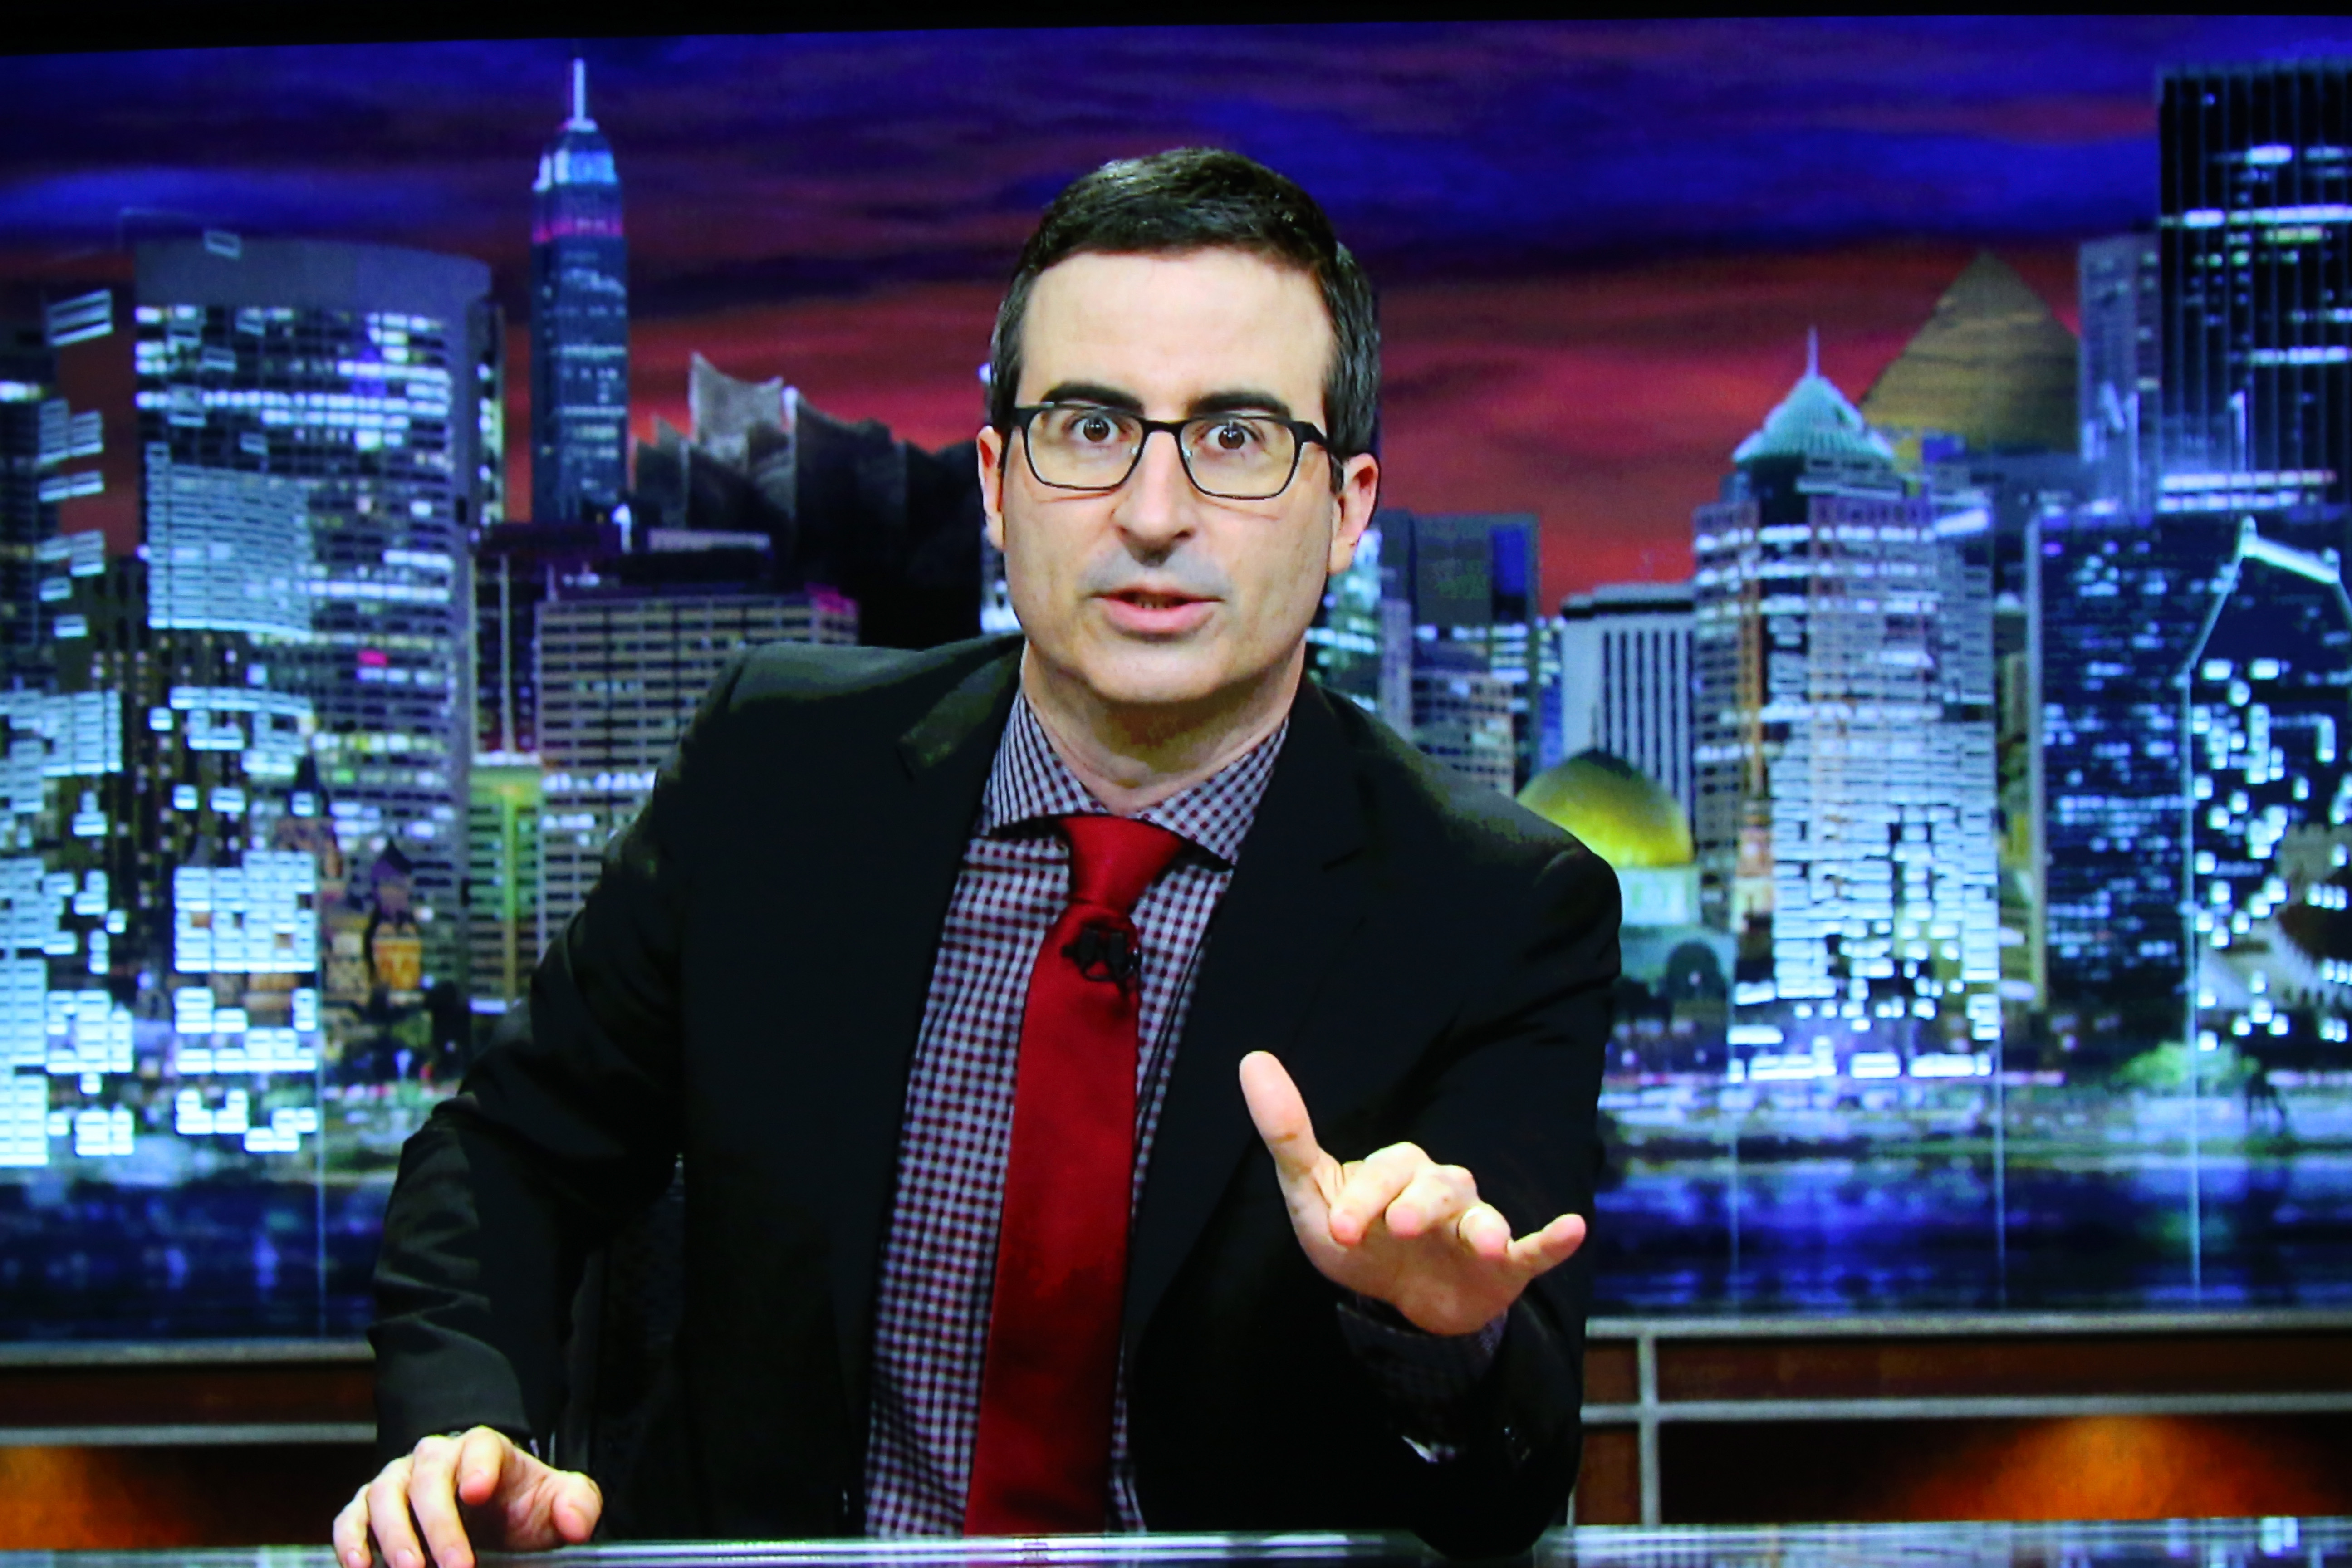 John Oliver trashes bad science and worse media coverage of it